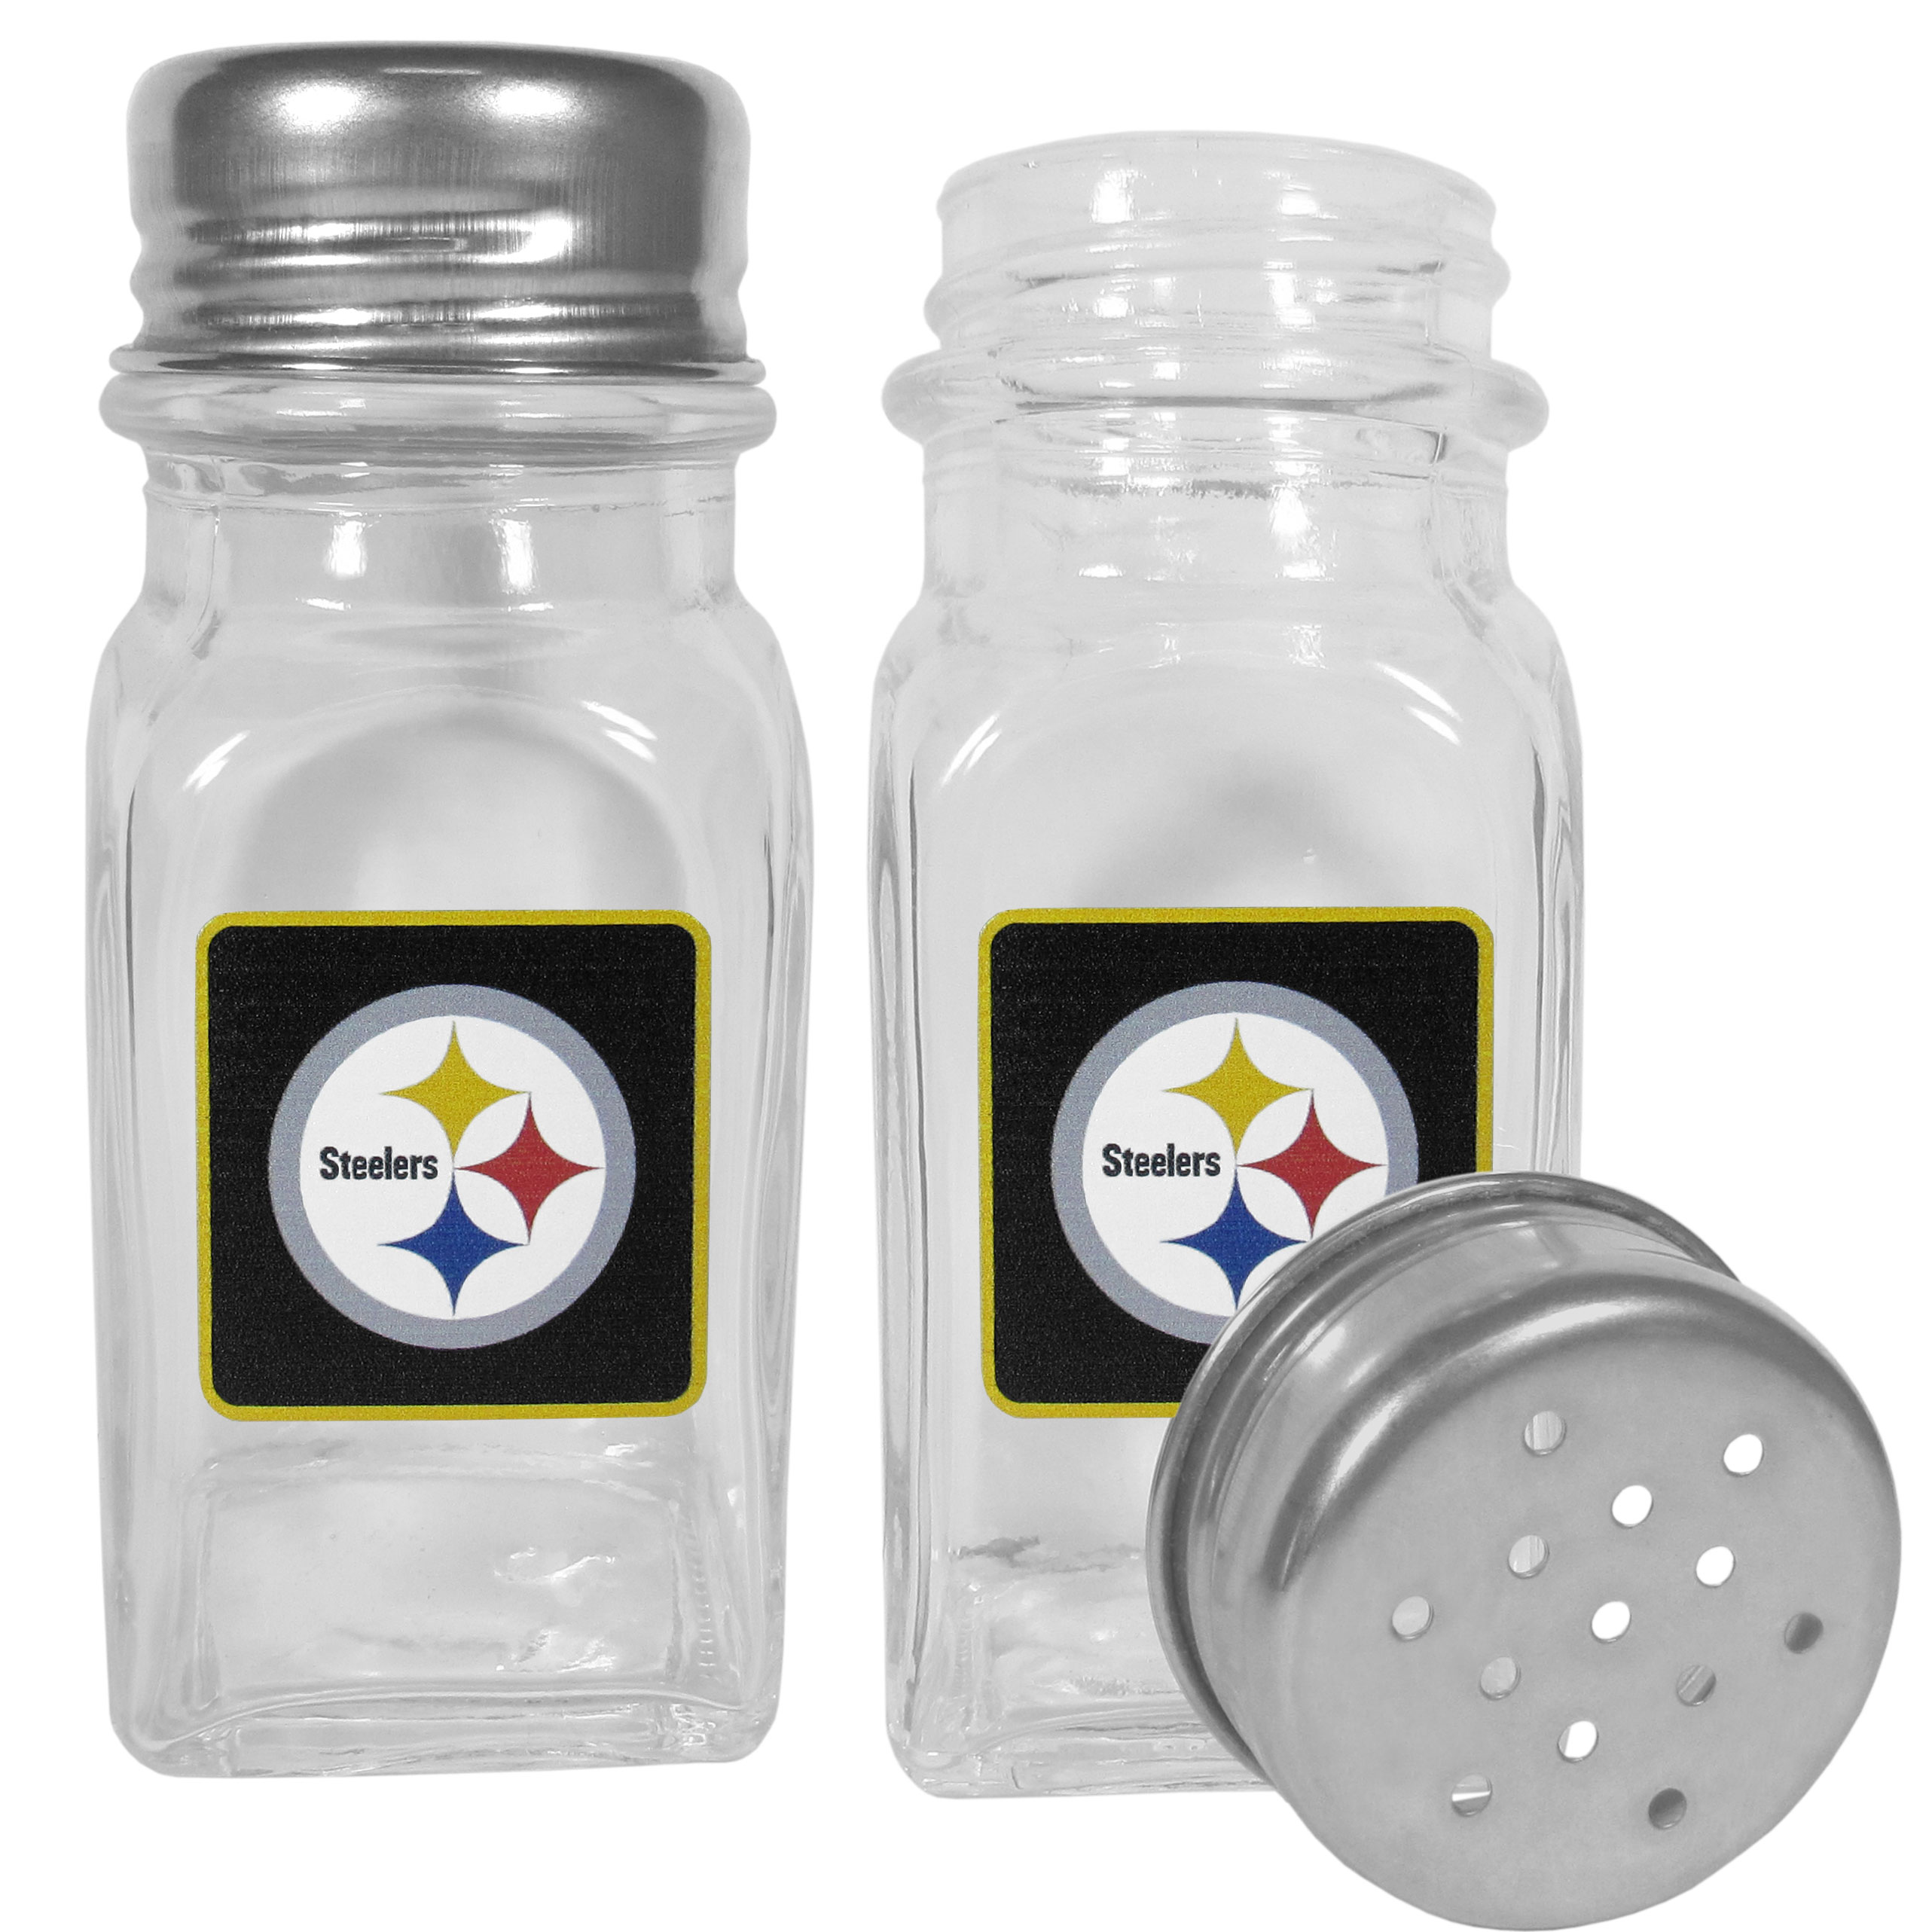 Pittsburgh Steelers Graphics Salt and Pepper Shaker - No tailgate party is complete without your Pittsburgh Steelers salt & pepper shakers featuring bright team logos. The diner replica salt and pepper shakers are glass with screw top lids. These team shakers are a great grill accessory whether you are barbecuing on the patio, picnicing or having a game day party.